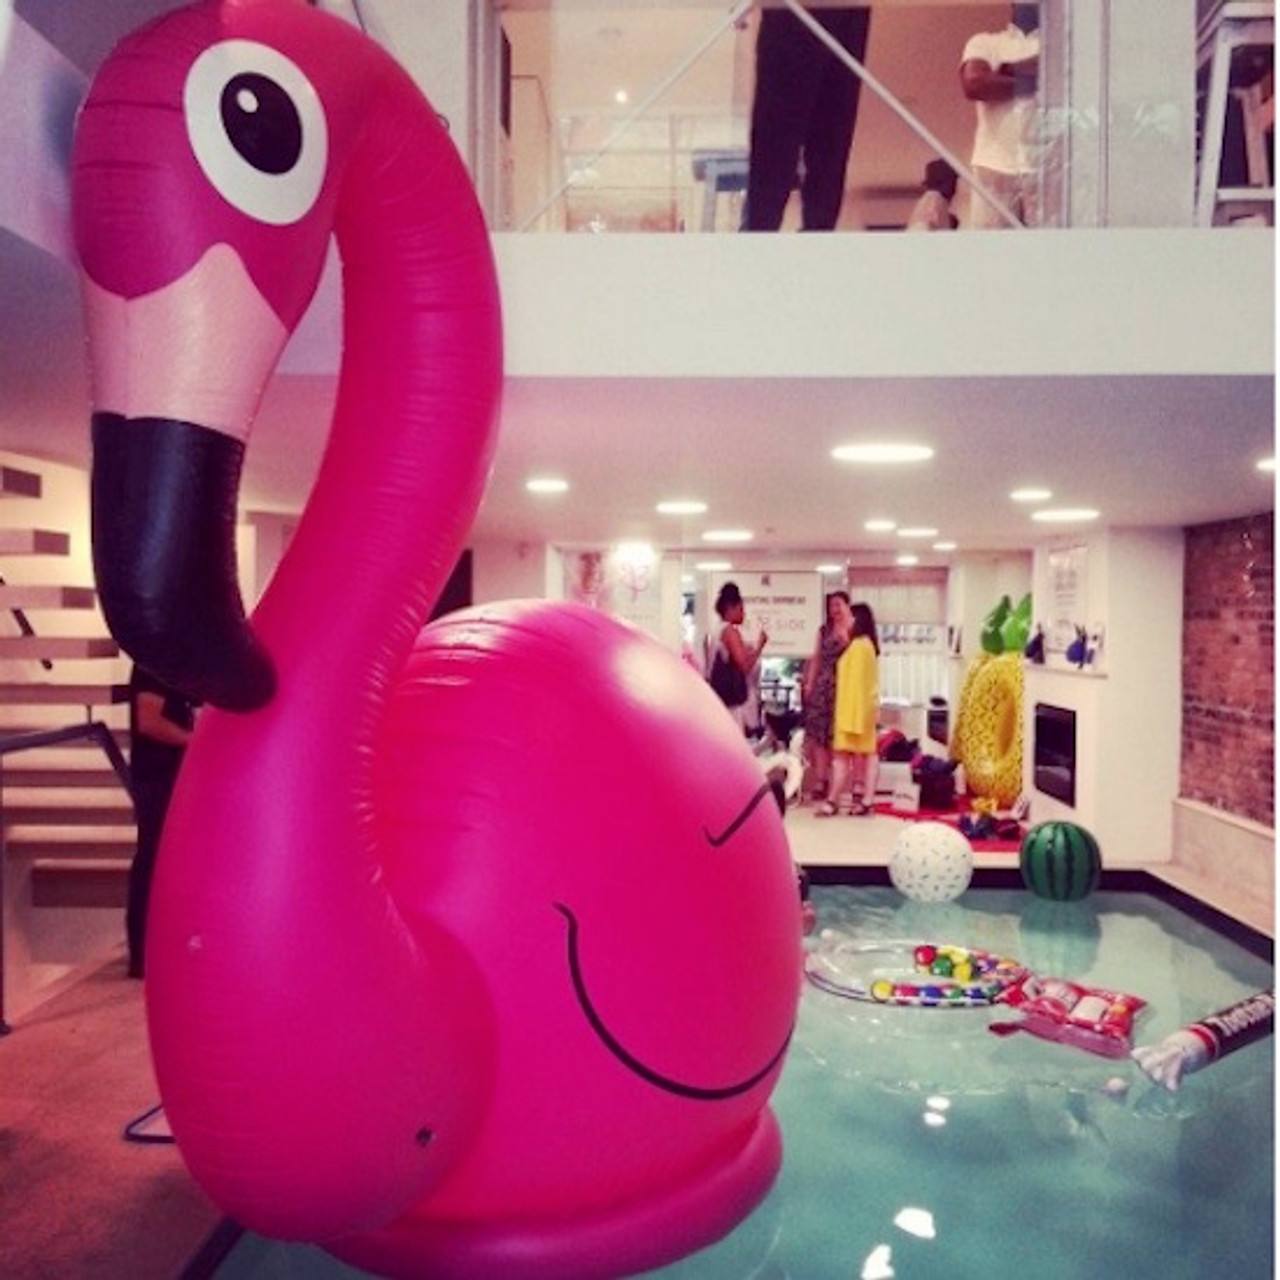 giant-gigantic-big-ass-10-foot-flamingo-inflatable-float-pool-party-summer-outdoors-nightclubshop-decoration-supplies-xxl-6